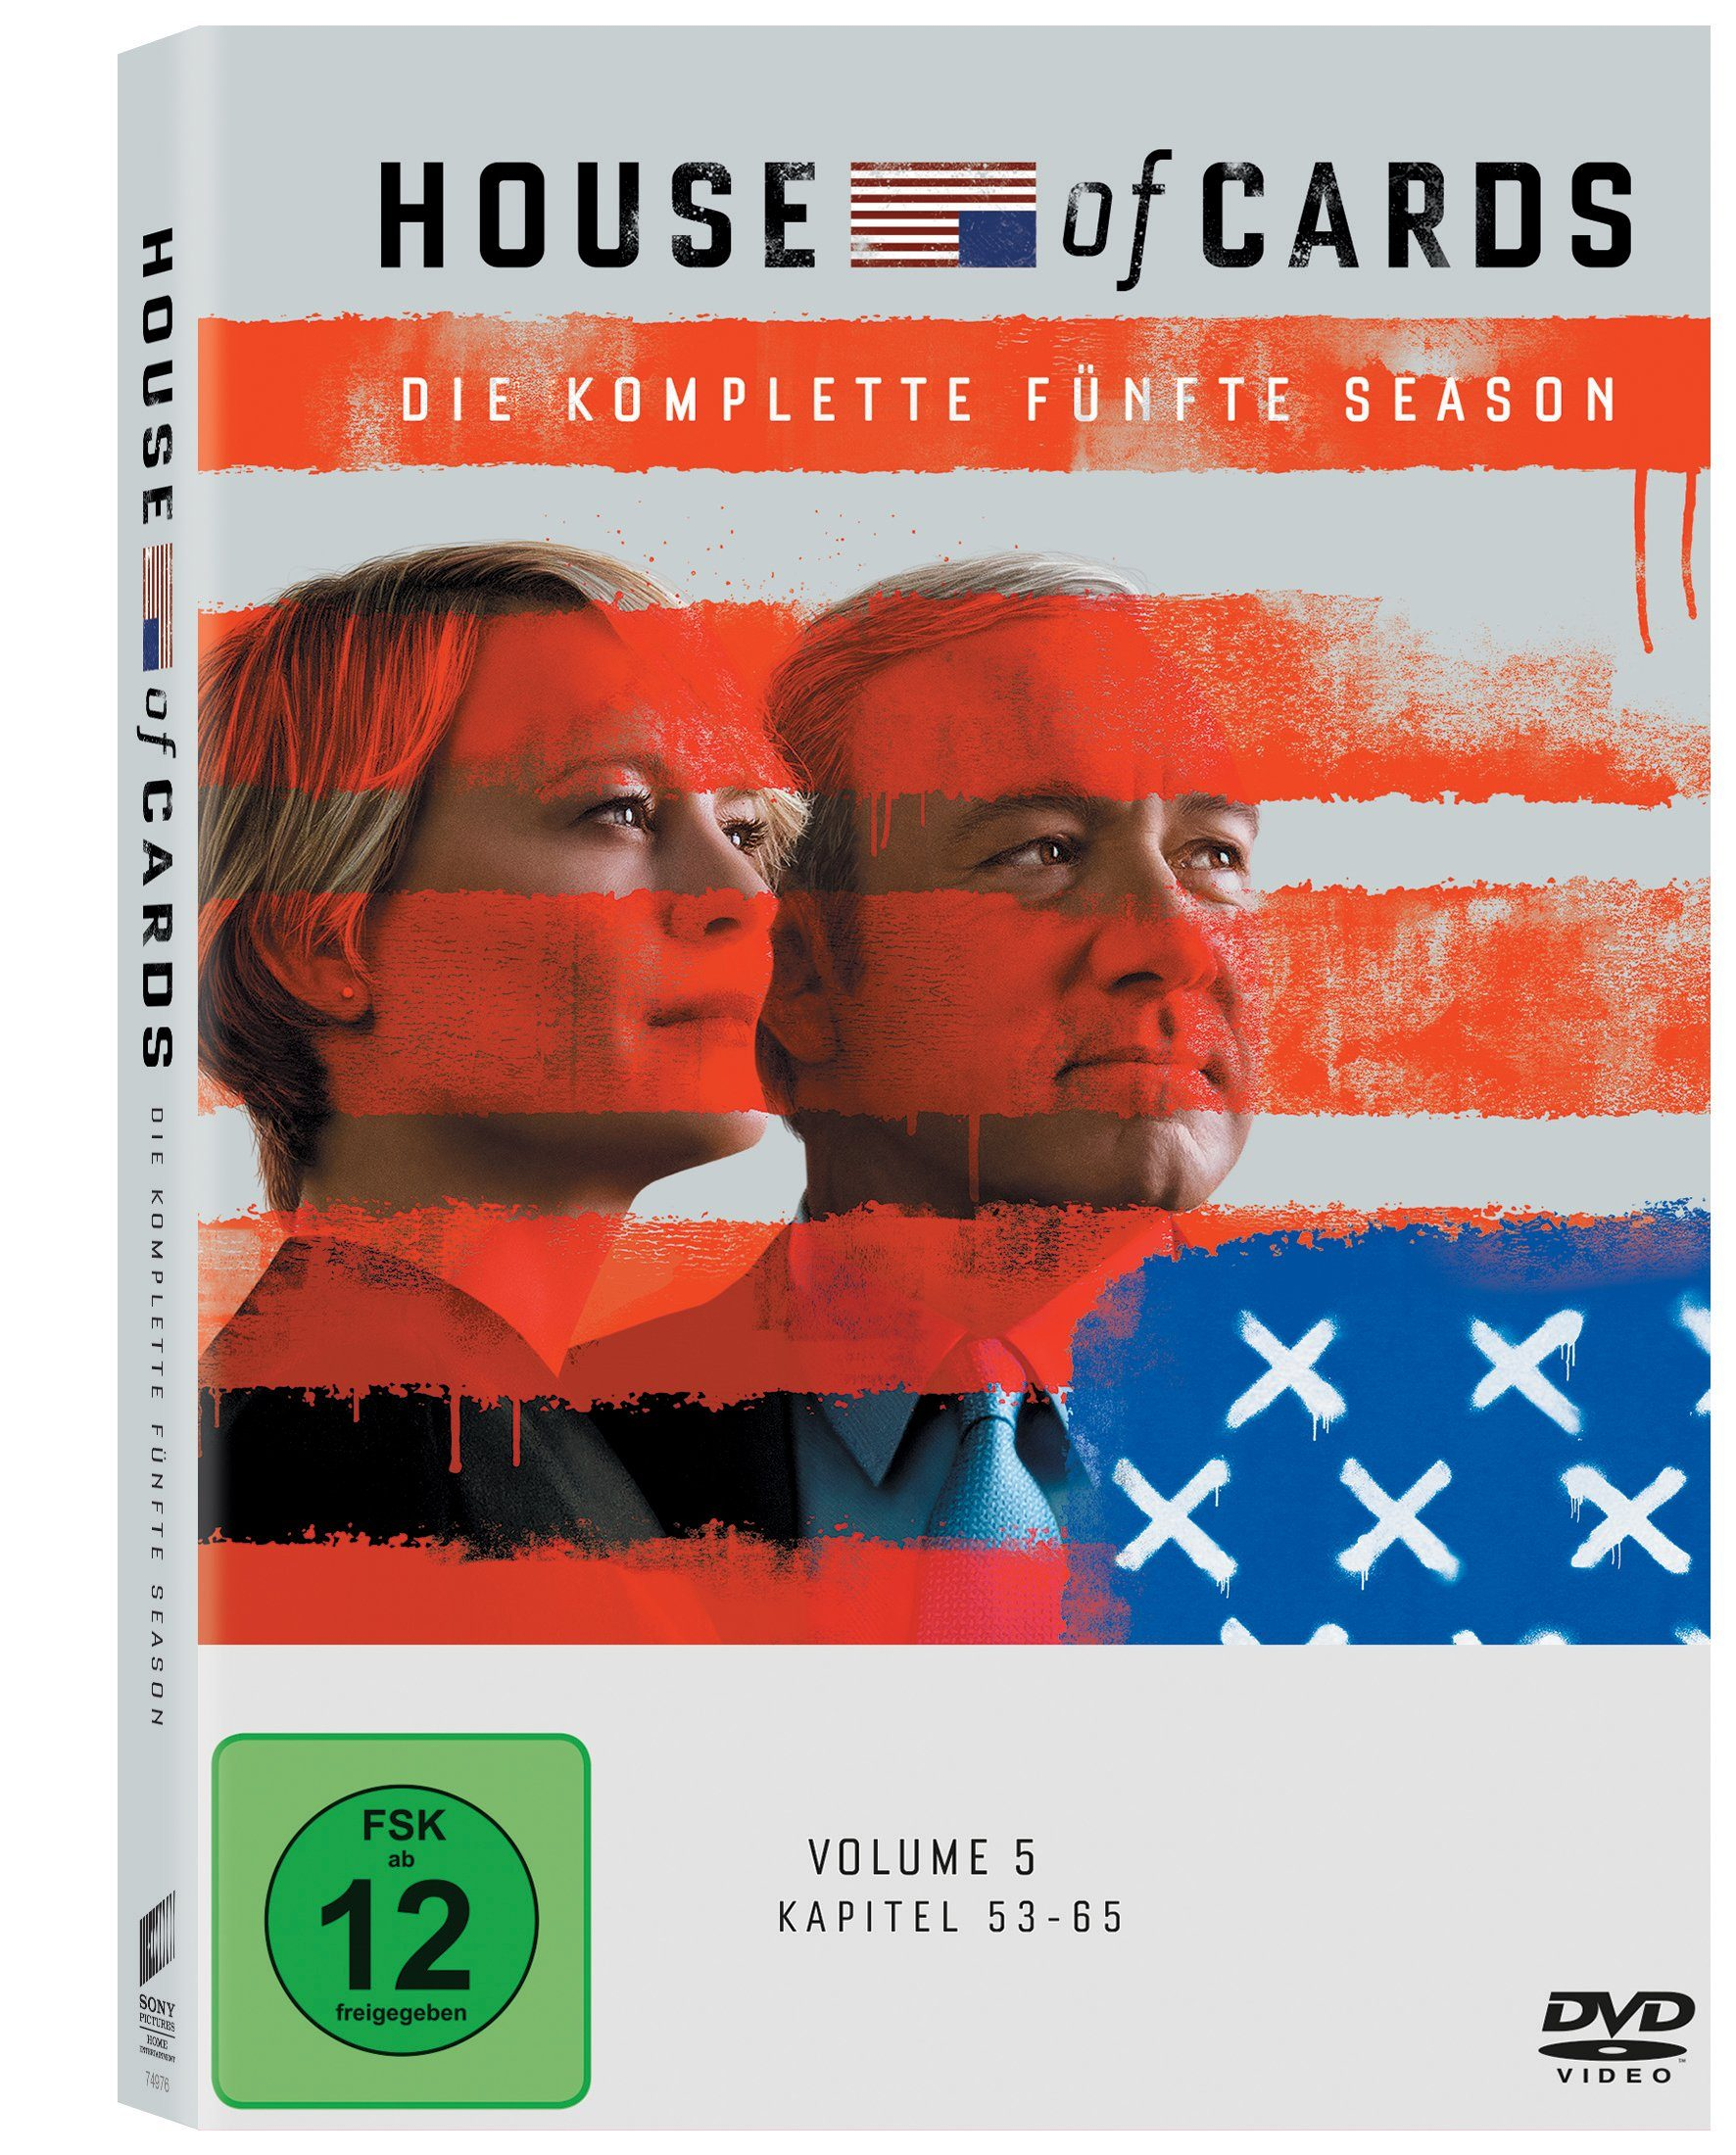 Sony Pictures DVD »House of Cards - Die komplette fünfte Season«